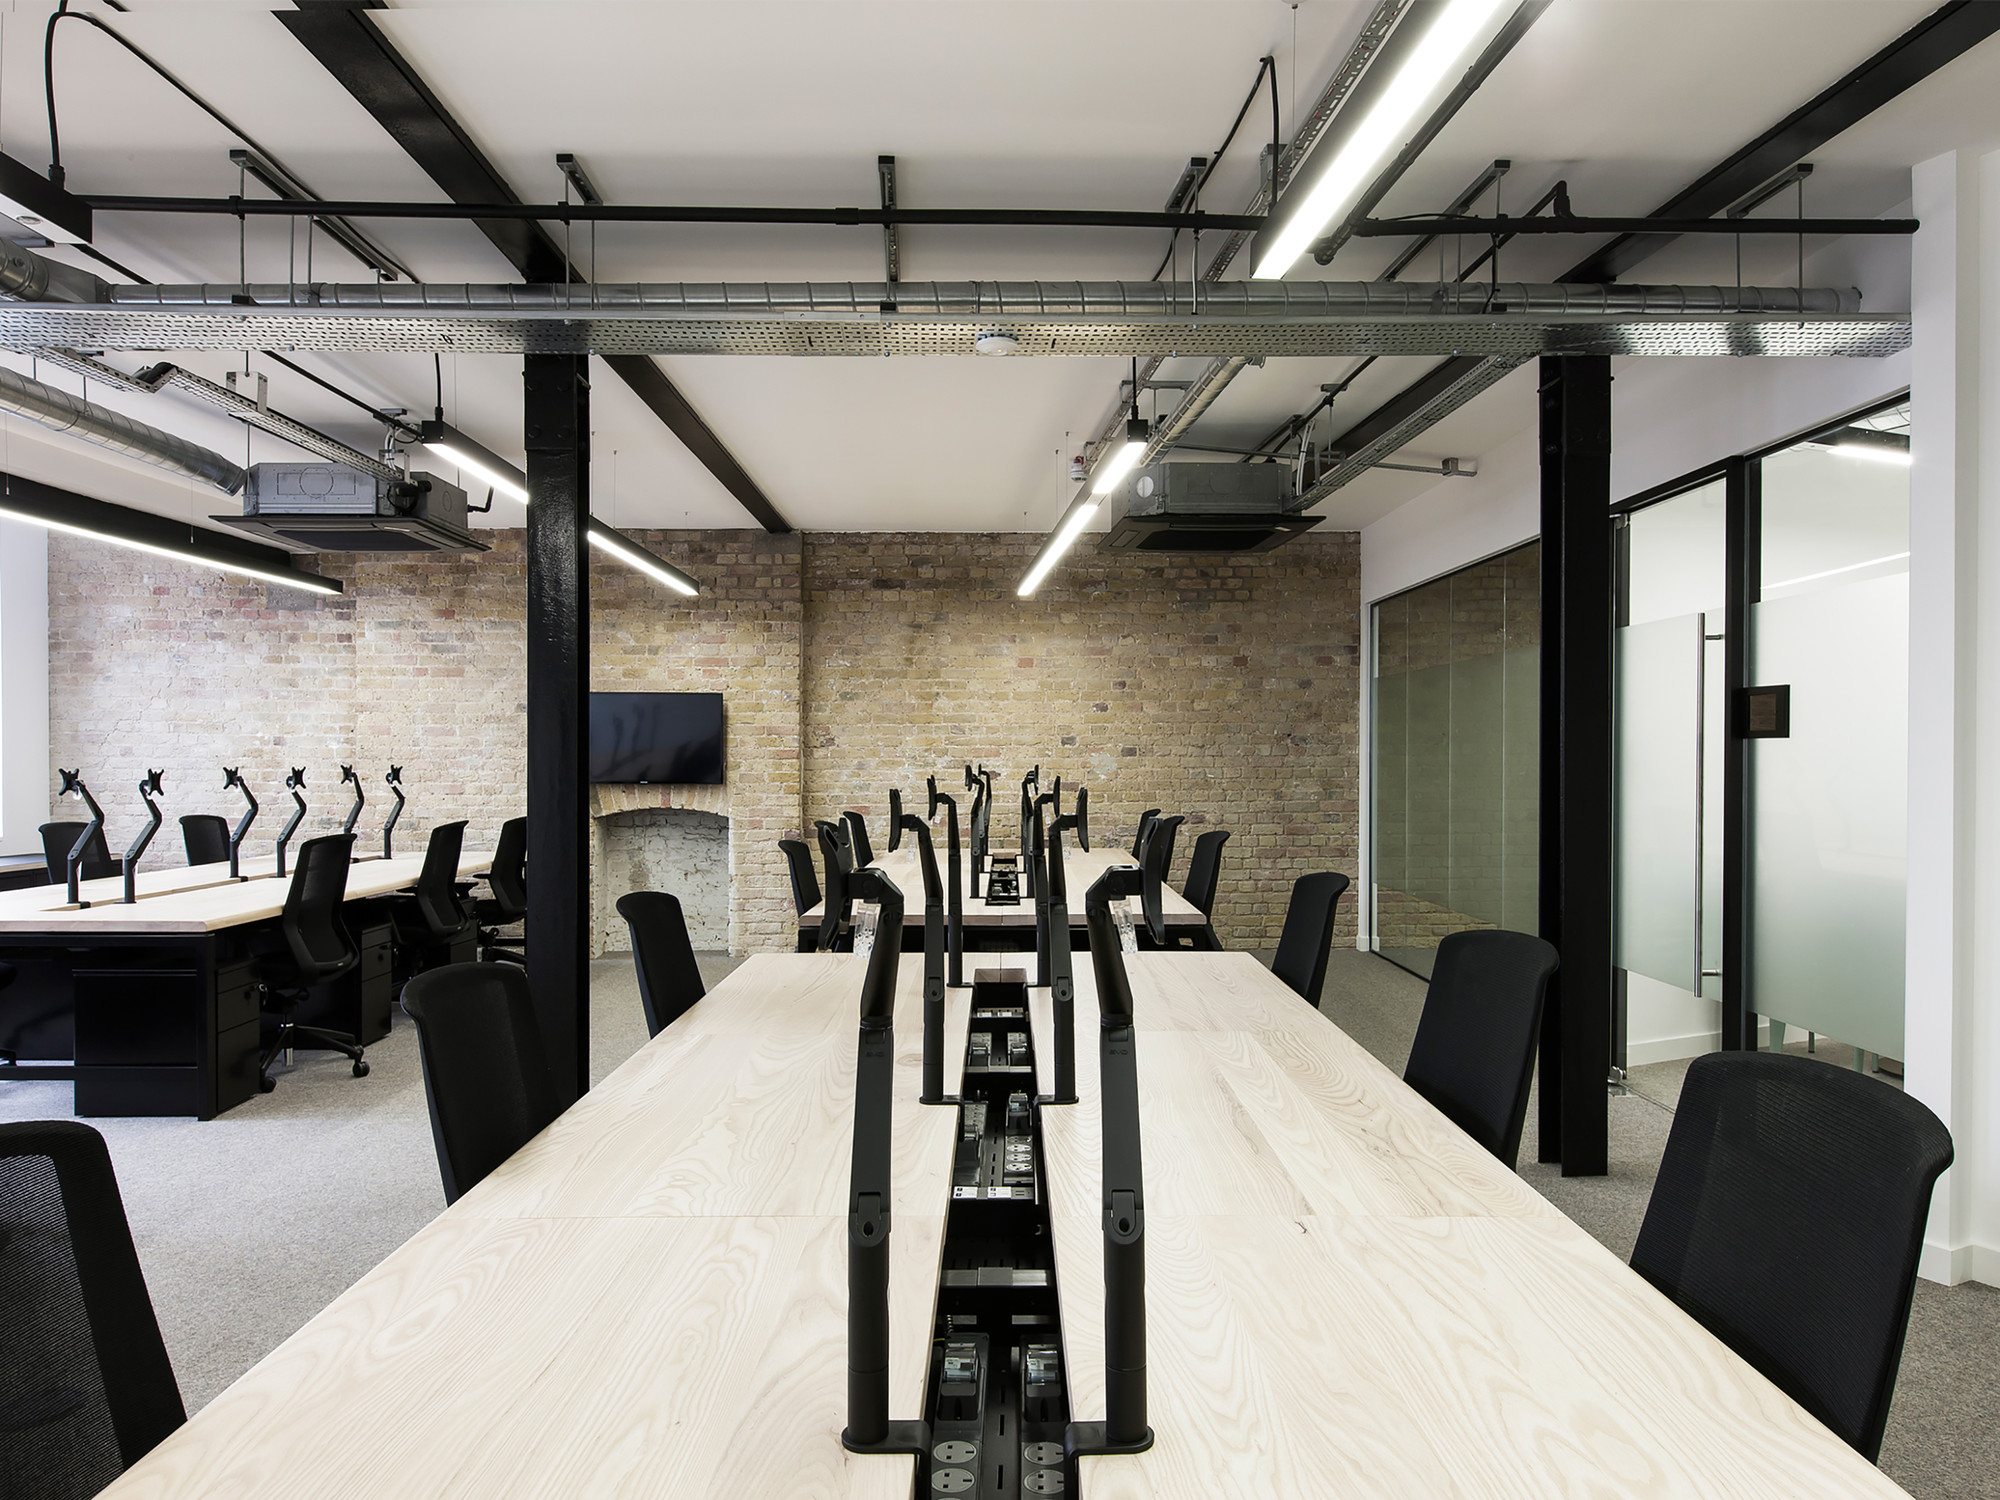 Architecture Office gallery of capco and bold rocket offices / d+ds architecture